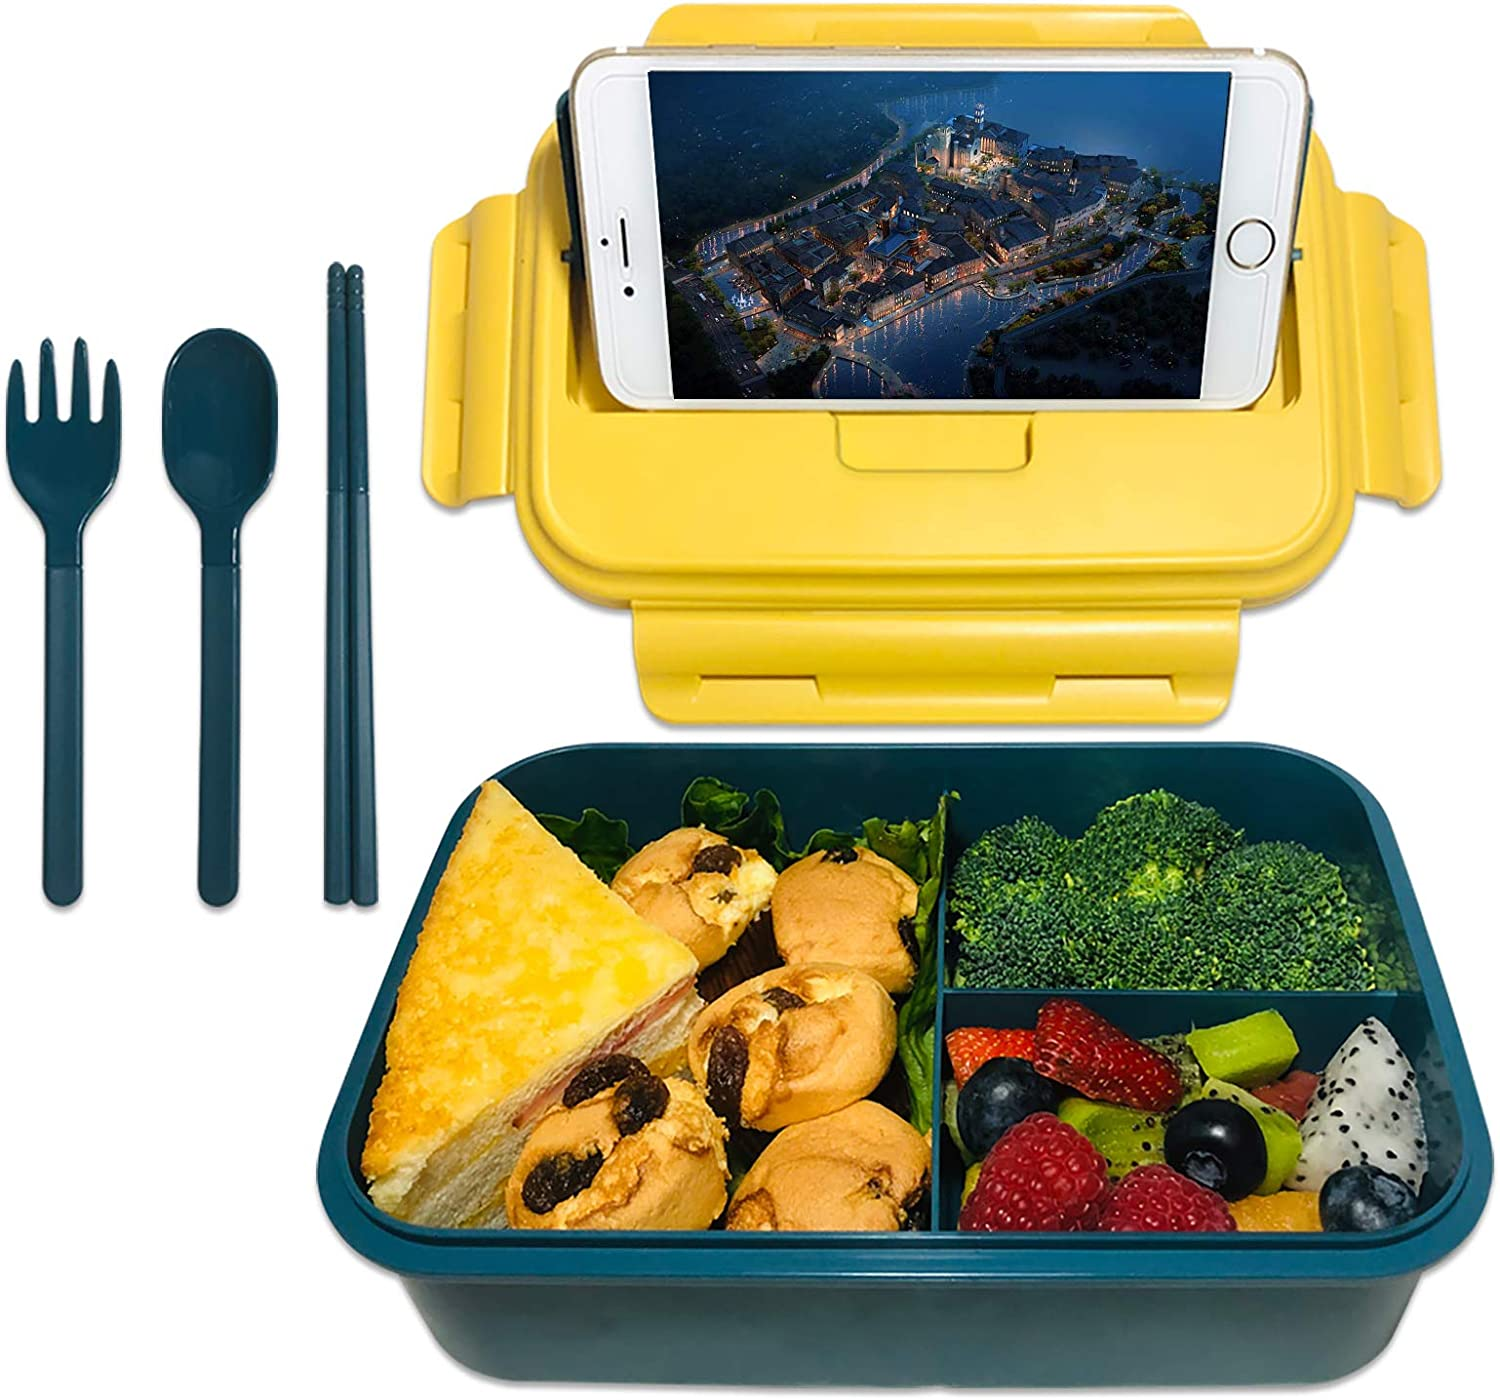 ASYH Bento Box for Kids Adults, 3 Compartments Leak Proof Lunch Box Rectangular Reusable Lunch Dinner Boxes with Fork and Spoon for Outdoors School Office (Blue)